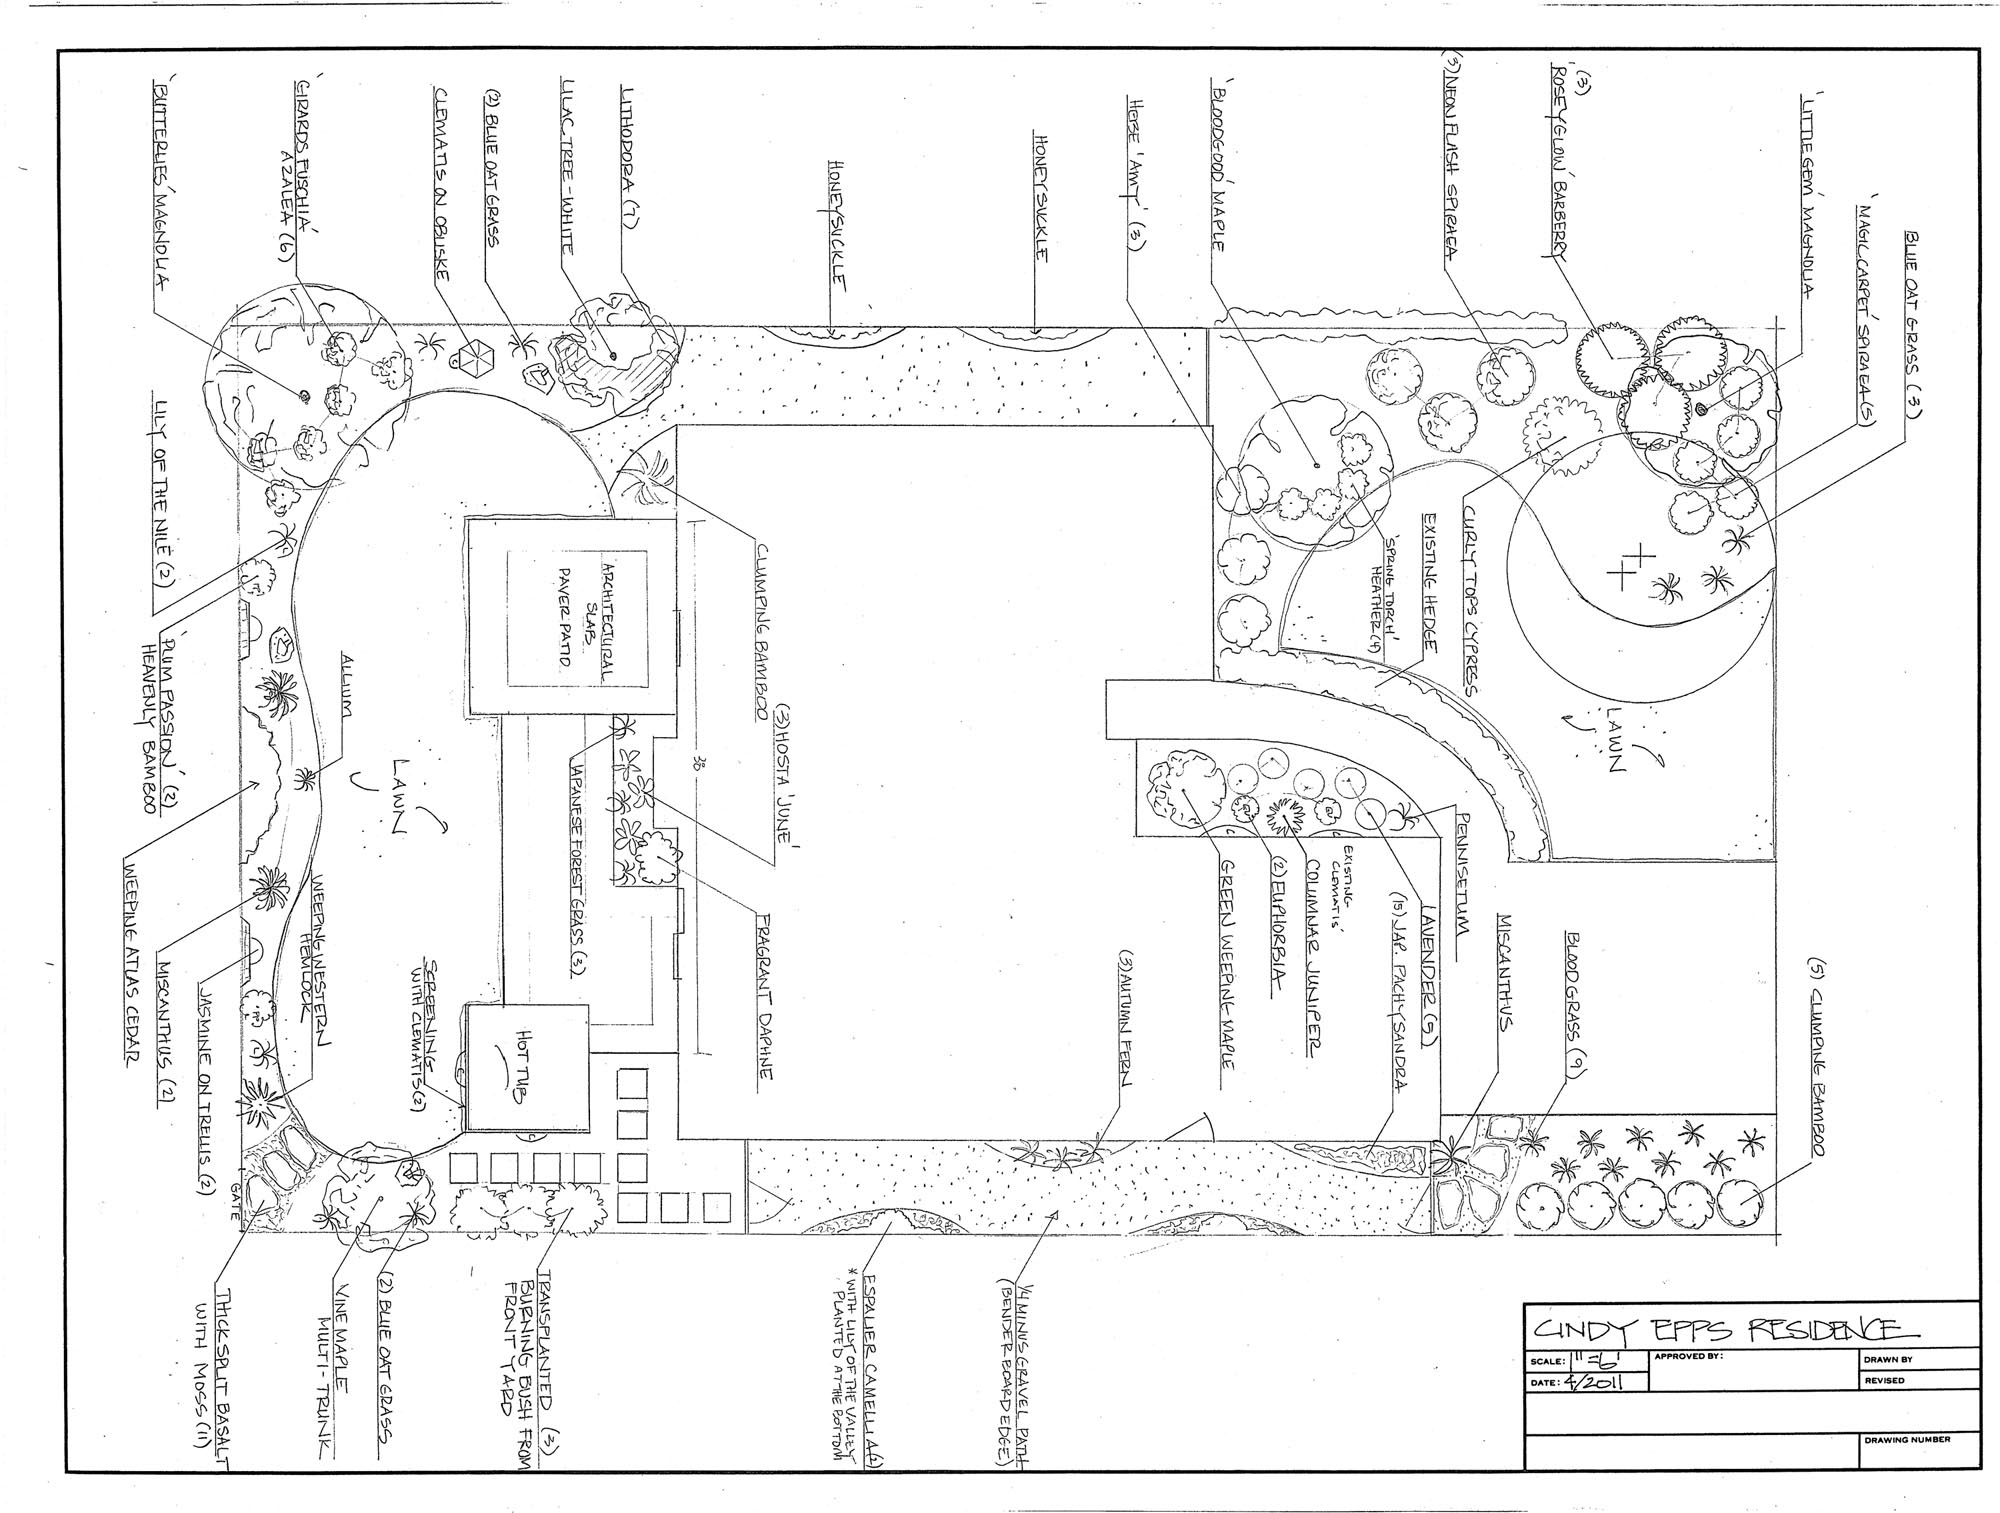 Full-landscape-projects-epps-project-summer-2011 000